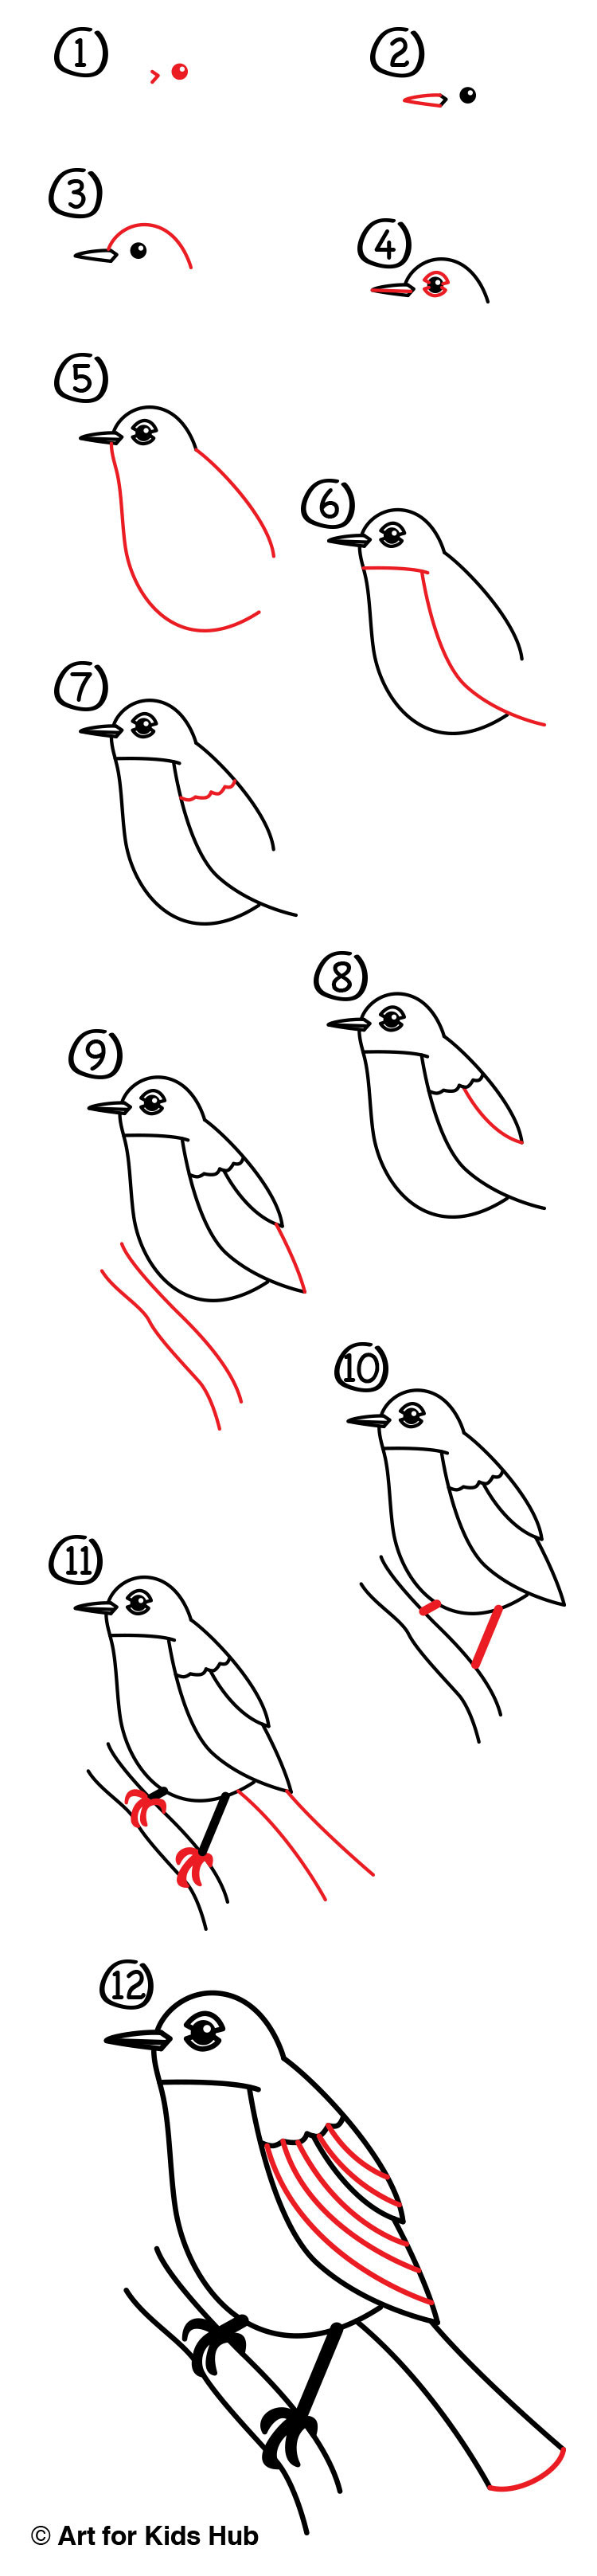 How To Draw A Robin Bird (Realistic) - Art For Kids Hub